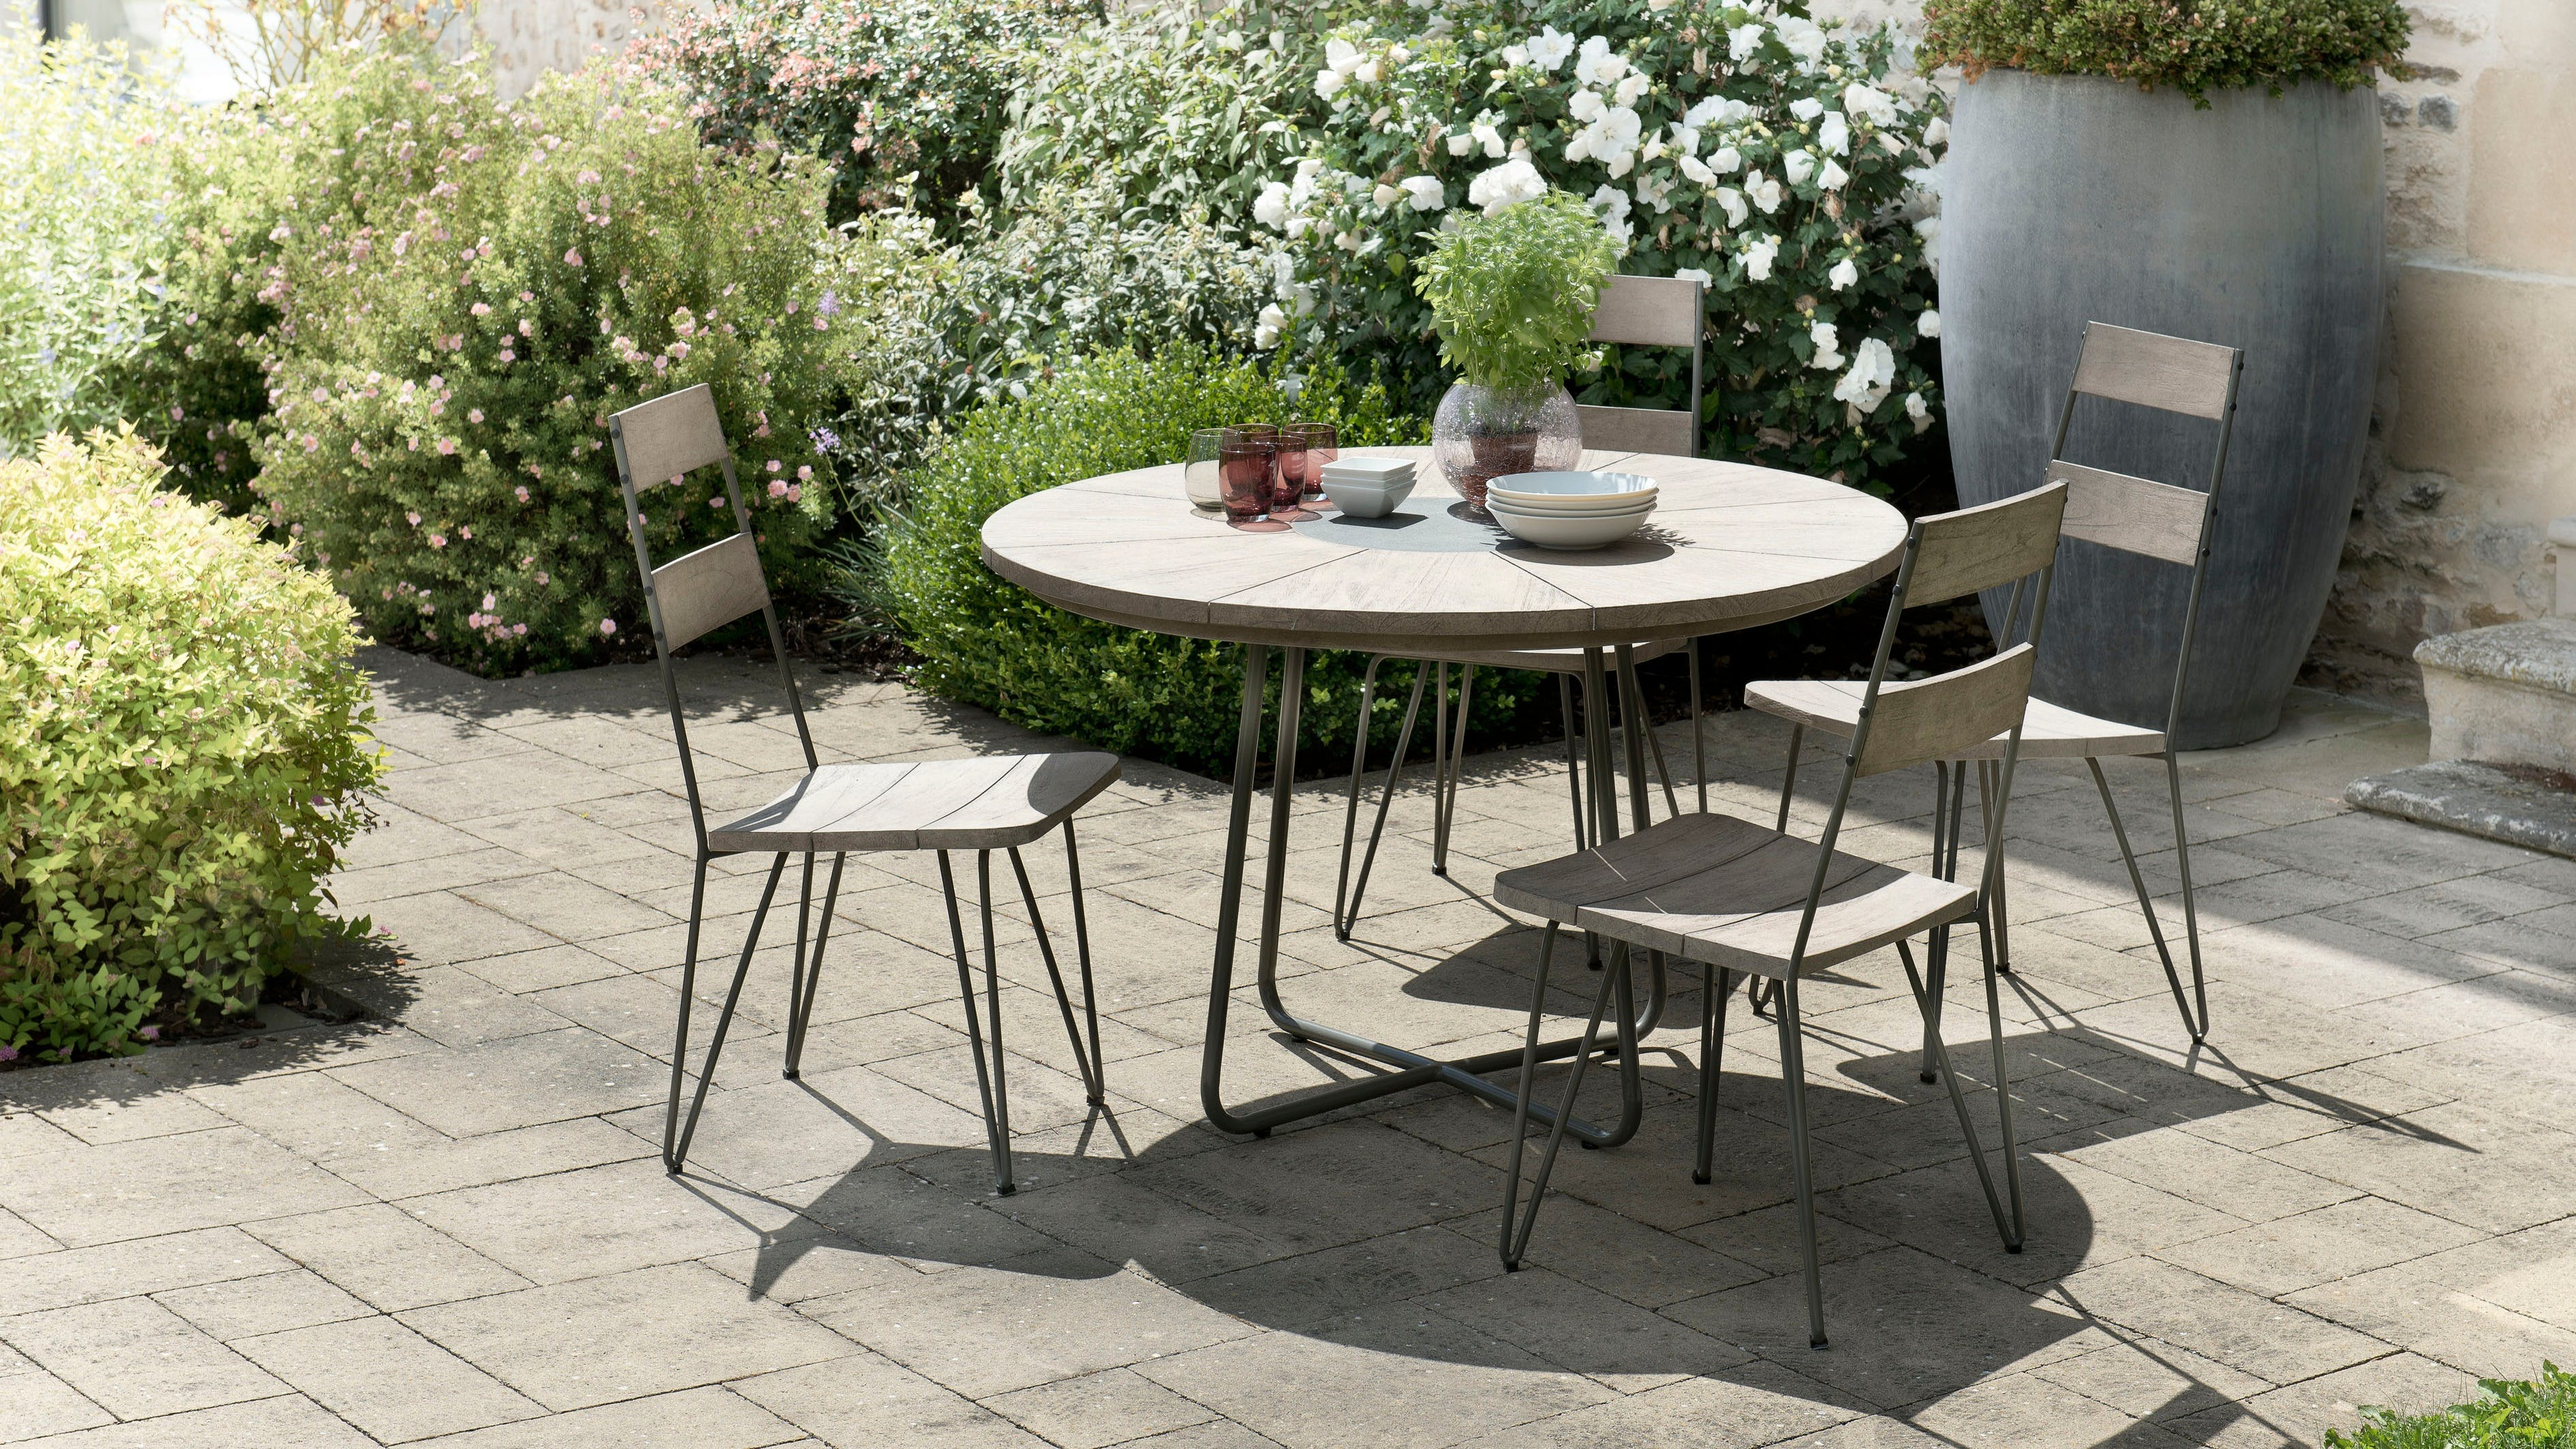 Salon de jardin | Pier Import